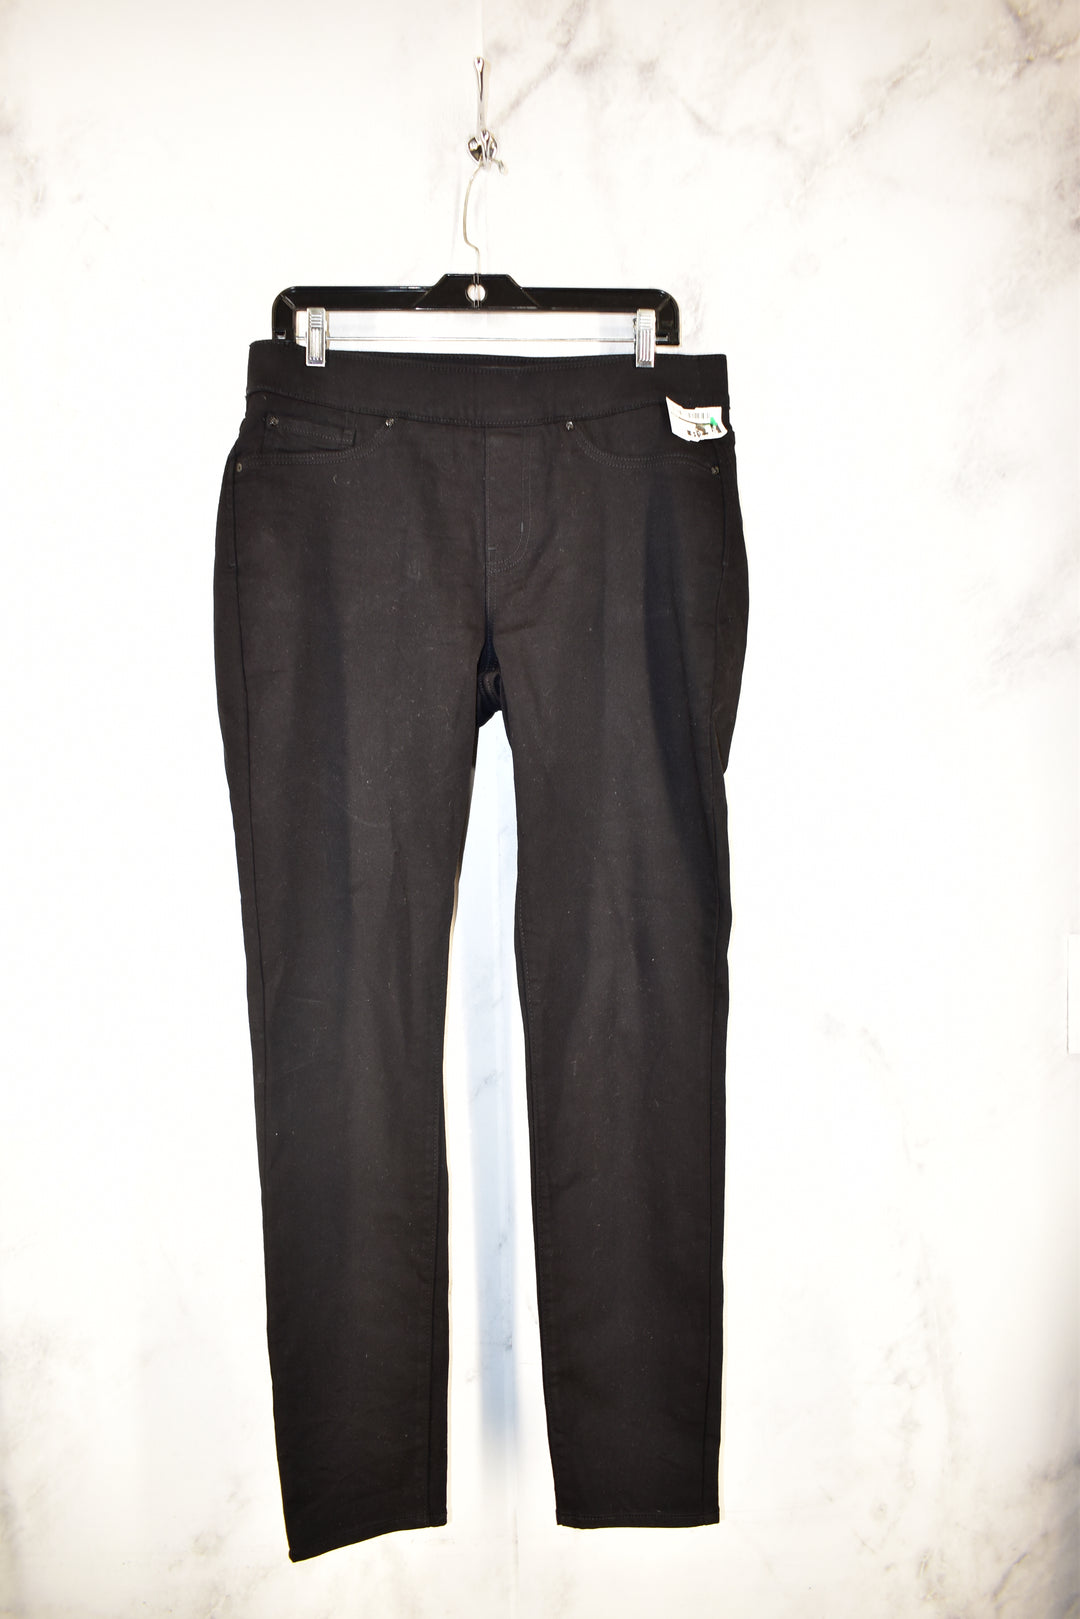 Primary Photo - BRAND: NEW YORK AND CO <BR>STYLE: PANTS <BR>COLOR: BLACK <BR>SIZE: M <BR>SKU: 186-186106-9019